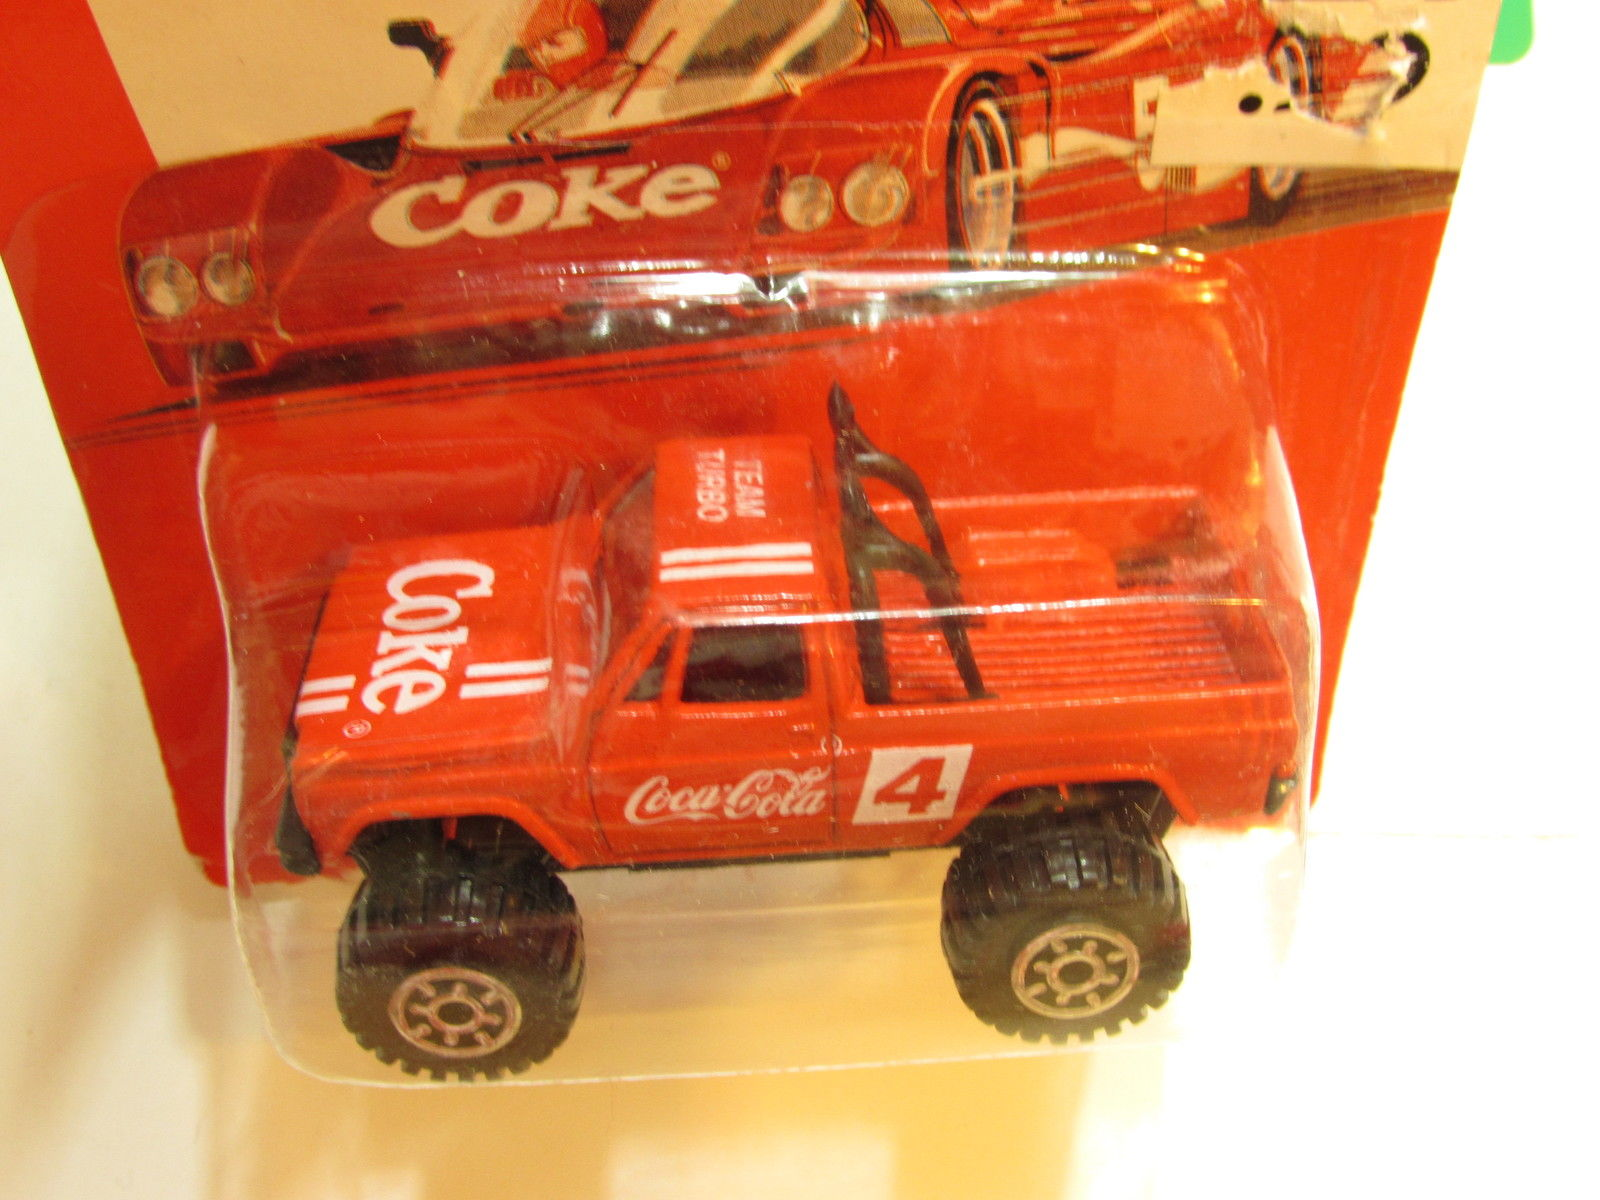 COCA COLA DIE CAST METAL TOY VEHICLES 4X4 TRUCK RED